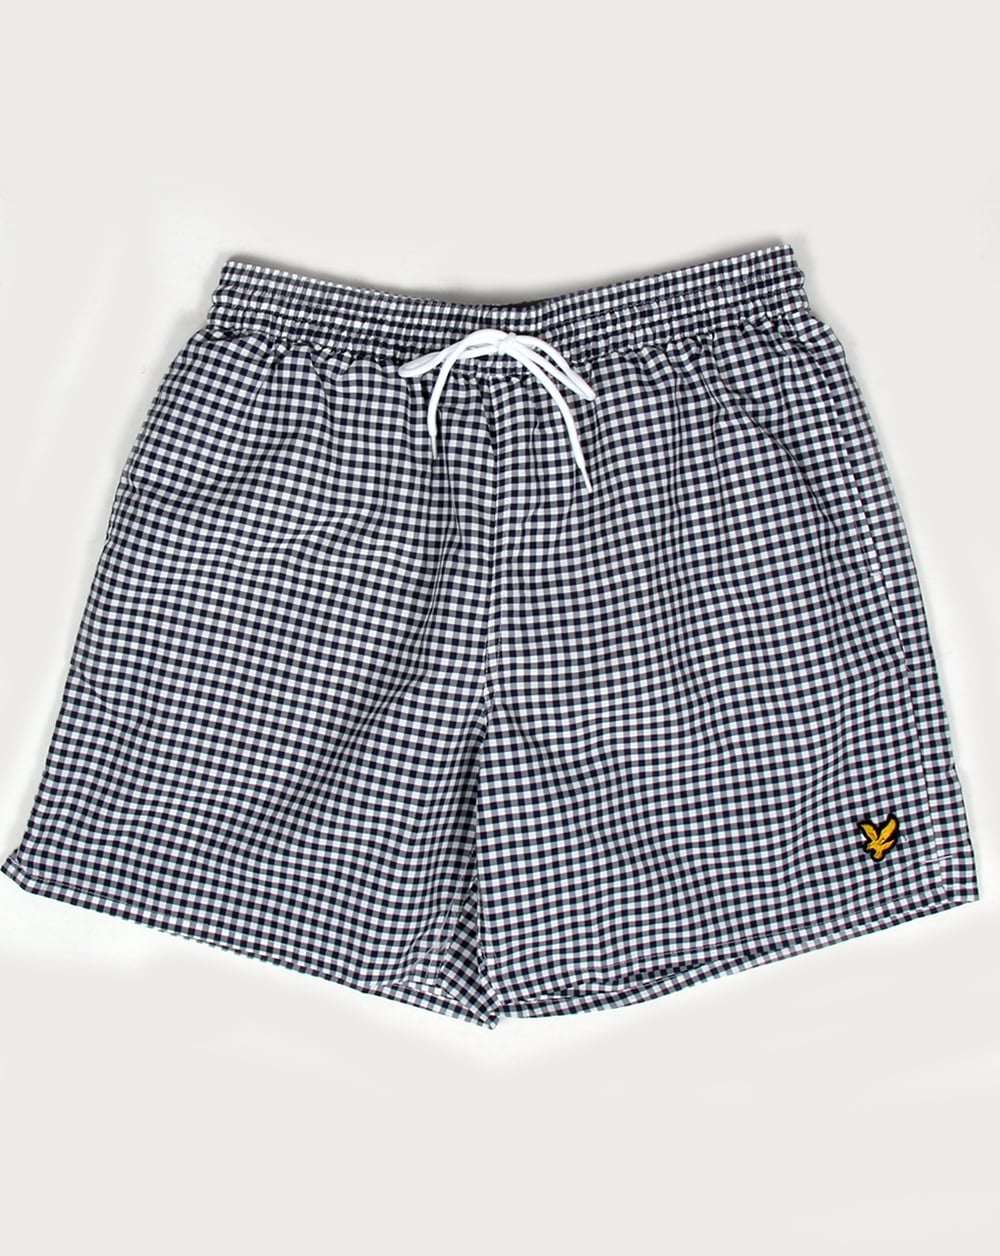 65edd1fae5b35 Lyle And Scott Gingham Swim Shorts Navy, Men's, Pool, Swimmers